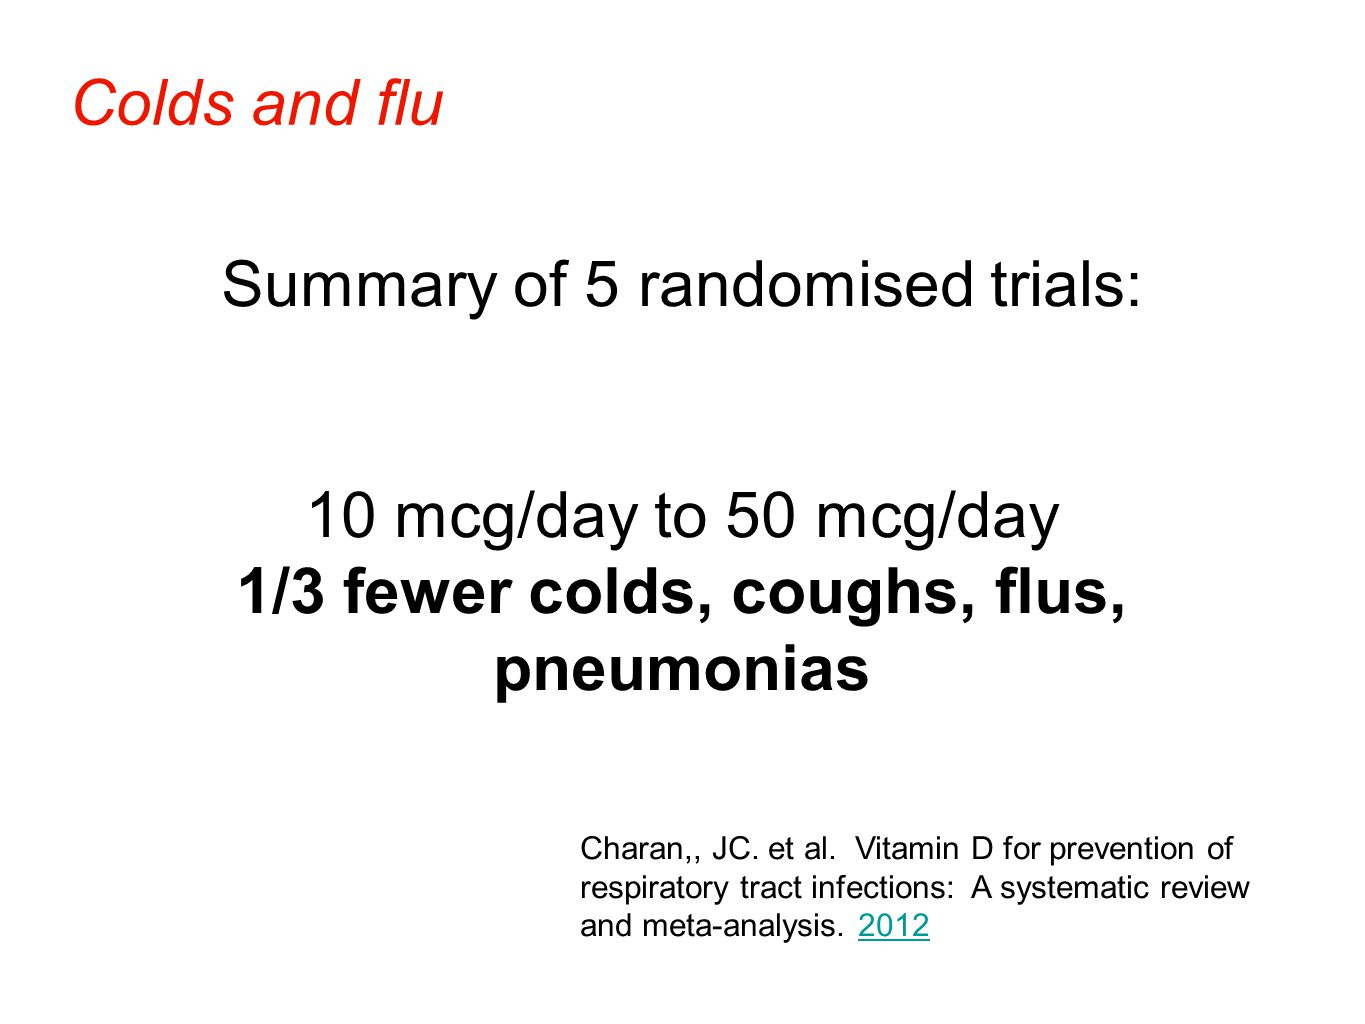 Summary of 5 randomised trials: 10 mcg/day to 50 mcg/day 1/3 fewer colds, coughs, flus, pneumonias Colds and flu Charan,, JC.